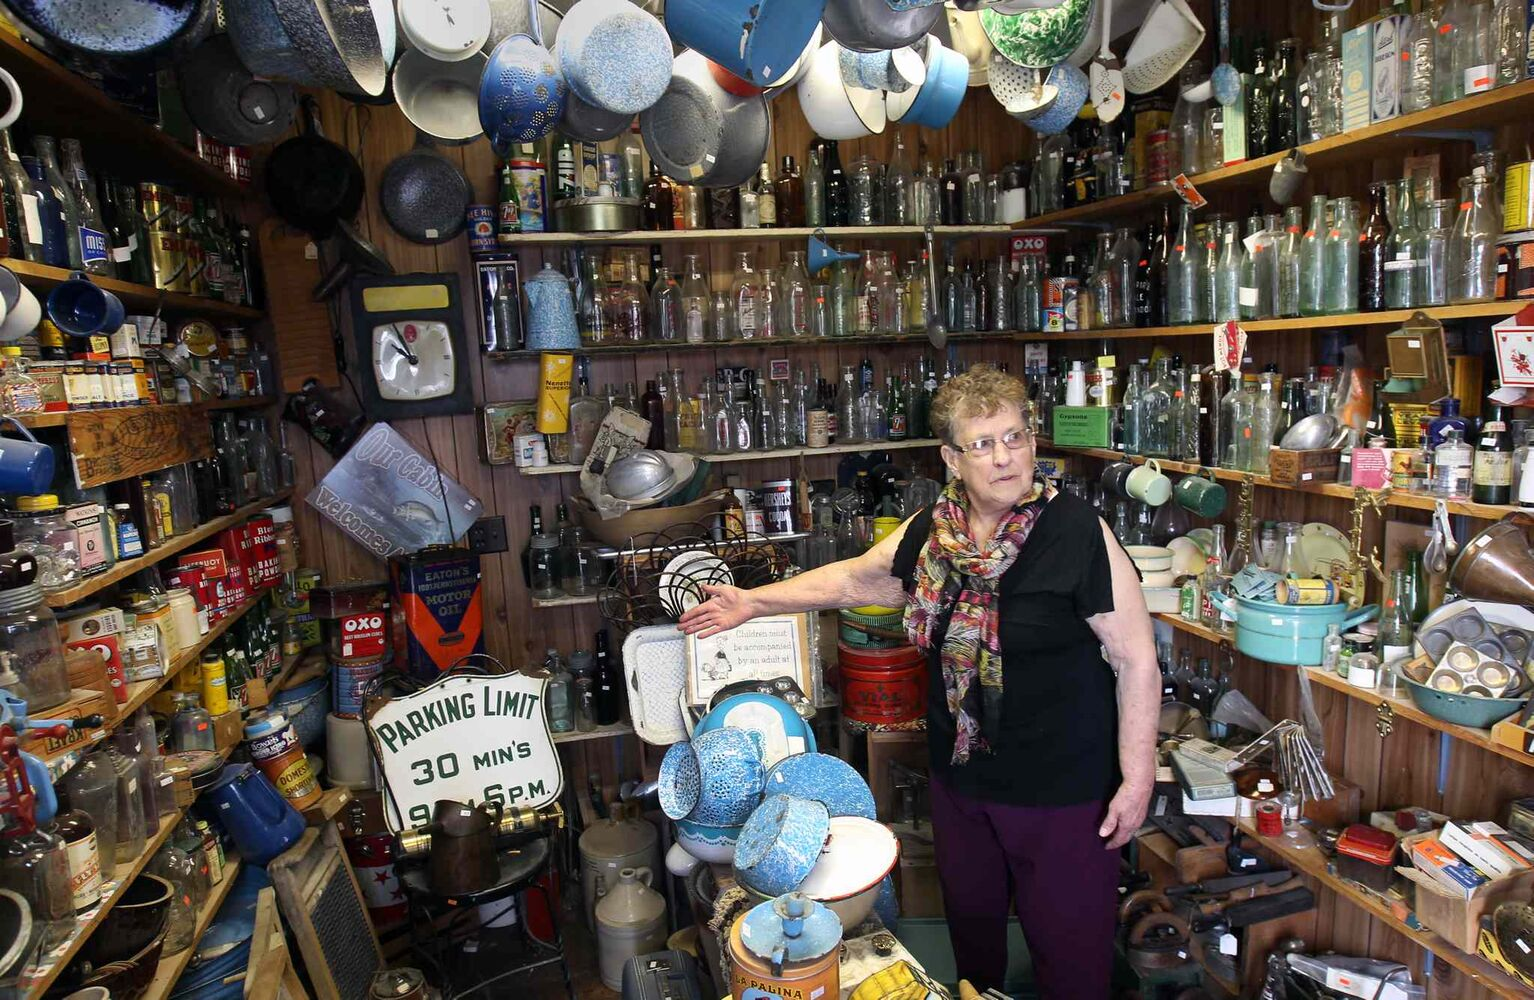 Vivian Proden inside her store to preparing for upcoming sale. owns Junk for Joy just East of  Portage La Prairie, Manitoba on Hyw. #1 - Vivian, 84, is retiring after 34 years in the junk business and is having a 50% off sale starting this Friday. ((JOE BRYKSA / WINNIPEG FREE PRESS))